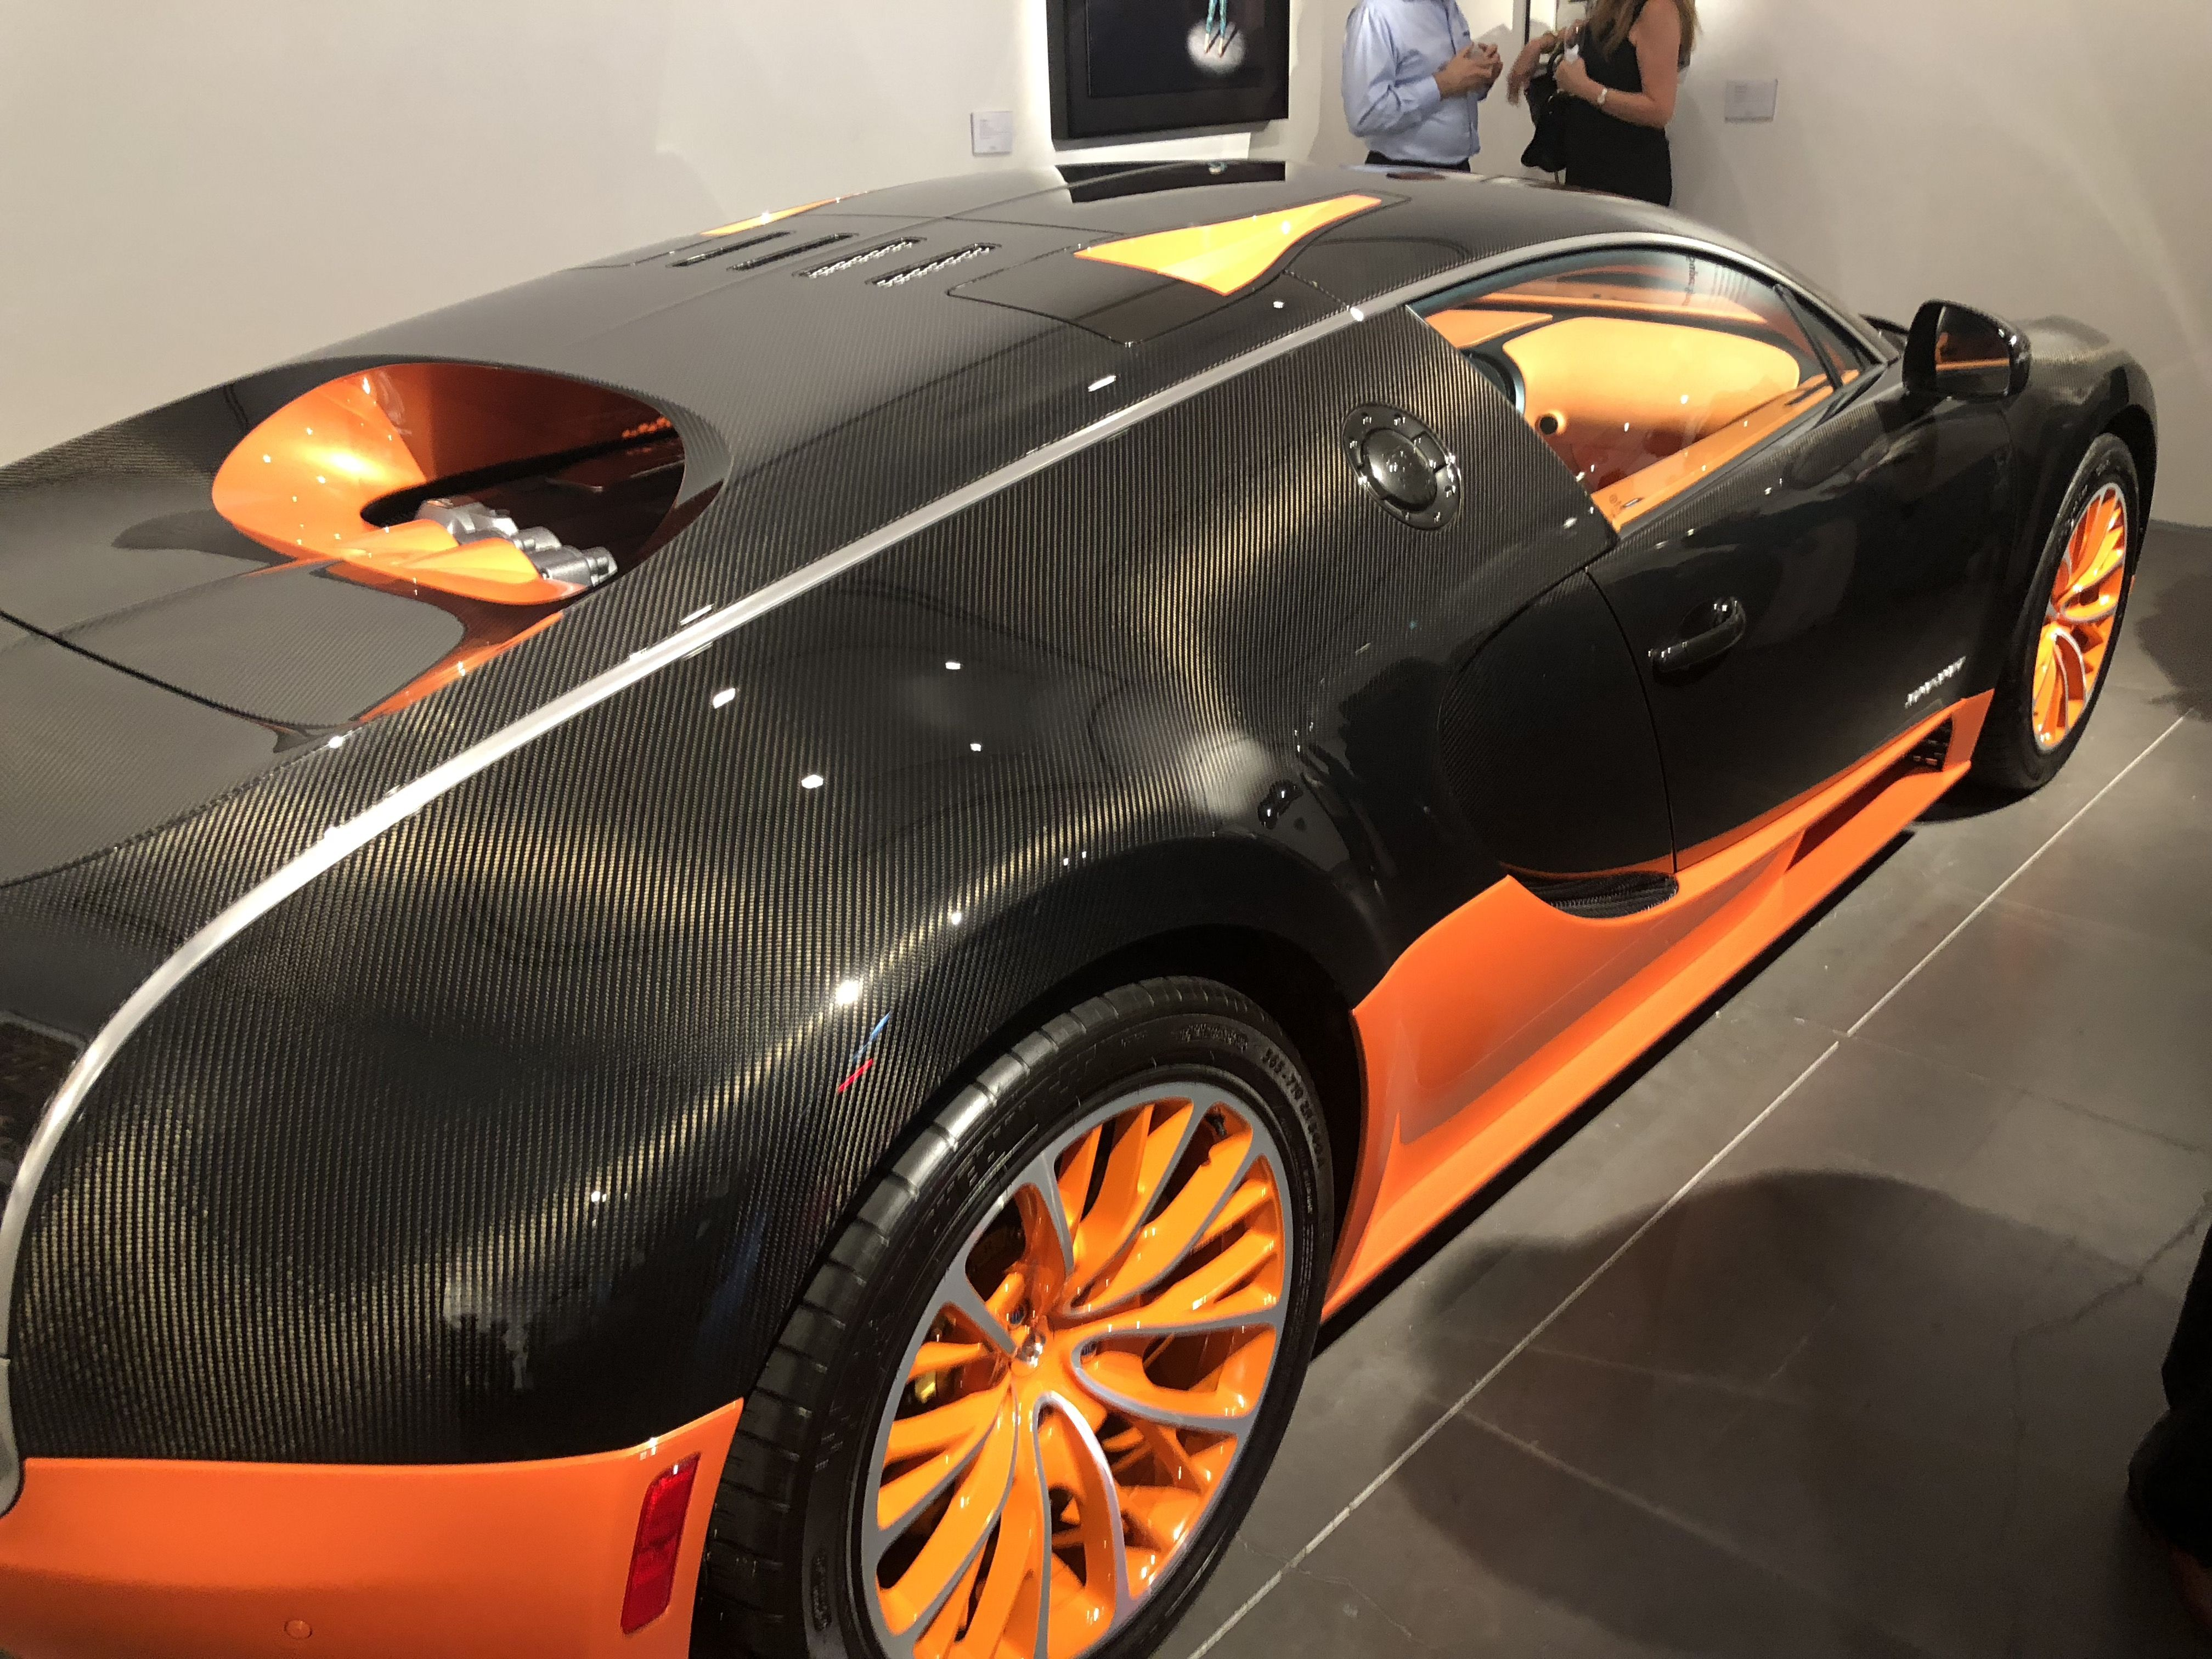 Bugatti Chiron Unveiled At Phillips Auction House In New York City Https Theromanceofelegance Com Bugatti Chiron Bugatti Phillips Auction